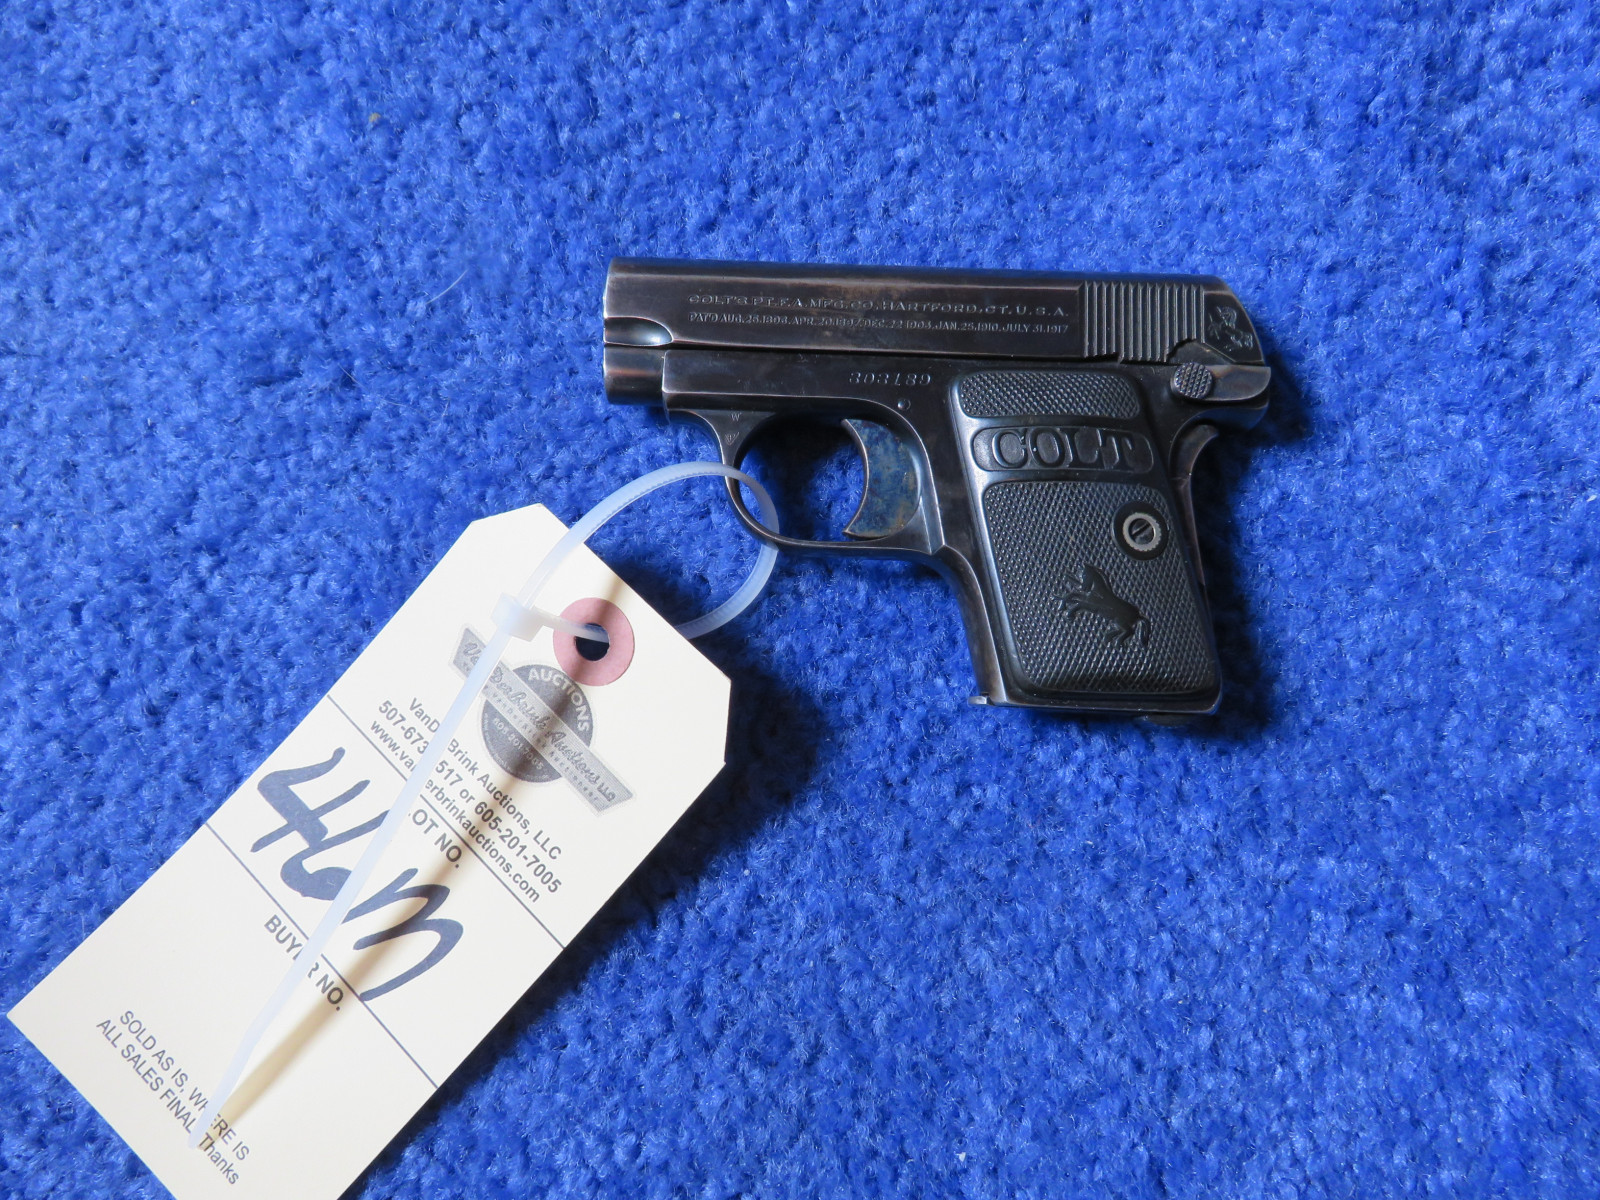 Colt Model 1908 Auto .25 Caliber Vest Pocket Pistol-Handgun - Image 2